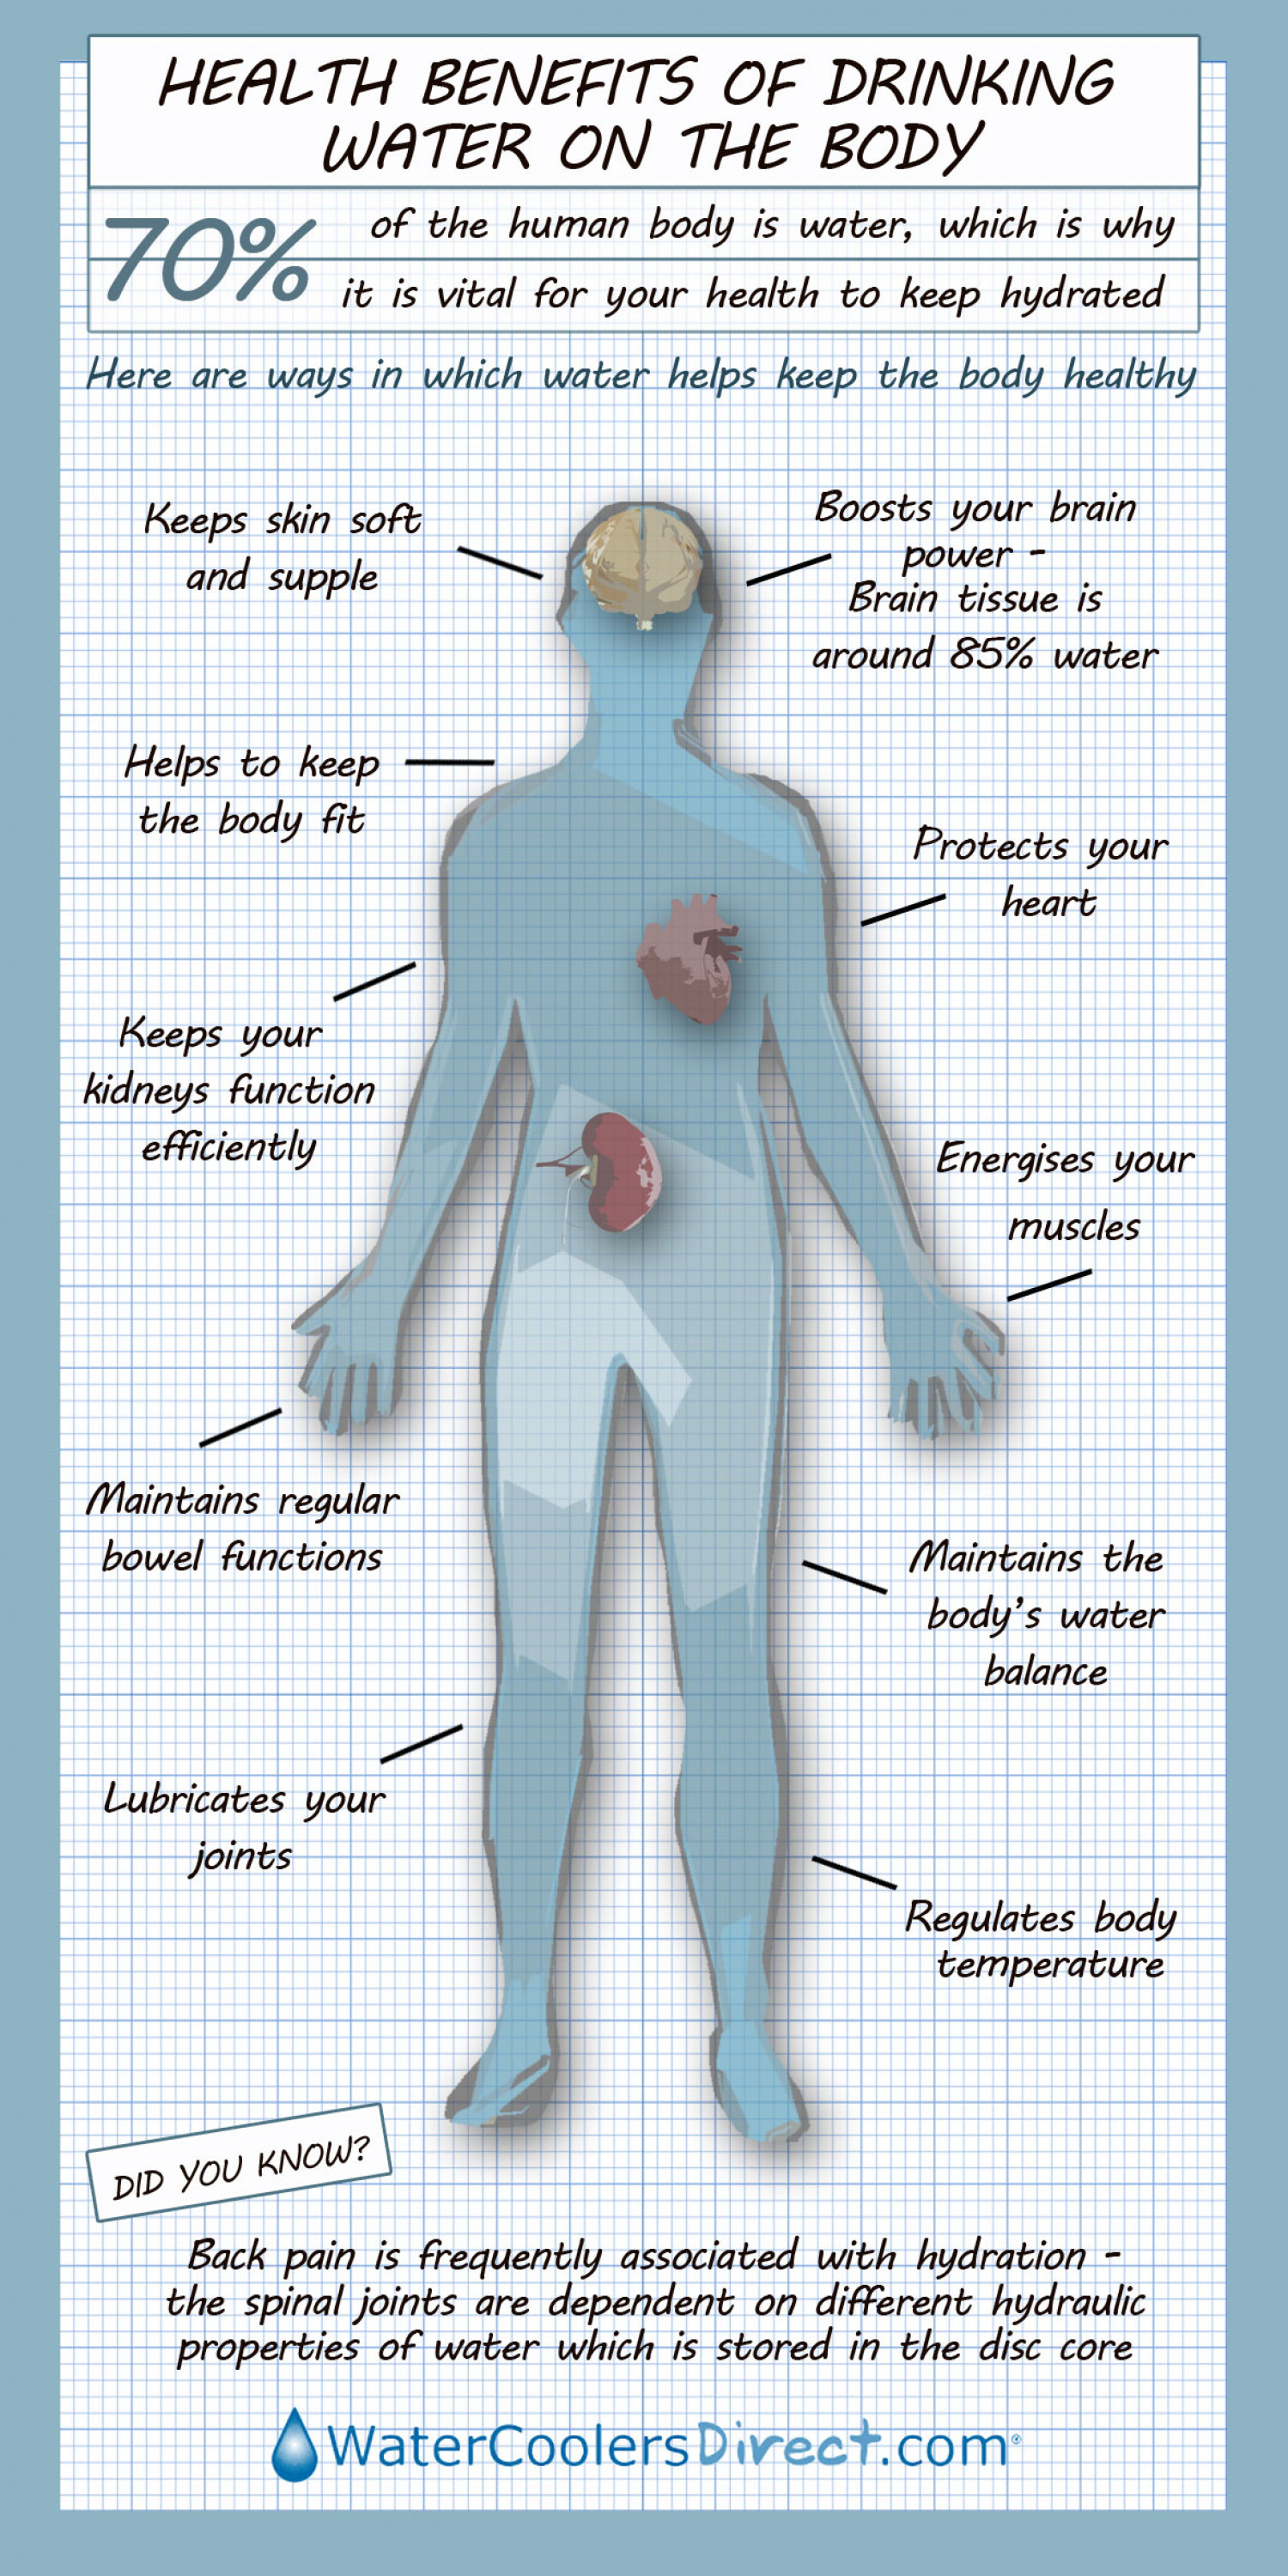 Benefits of Water on the Body Infographic